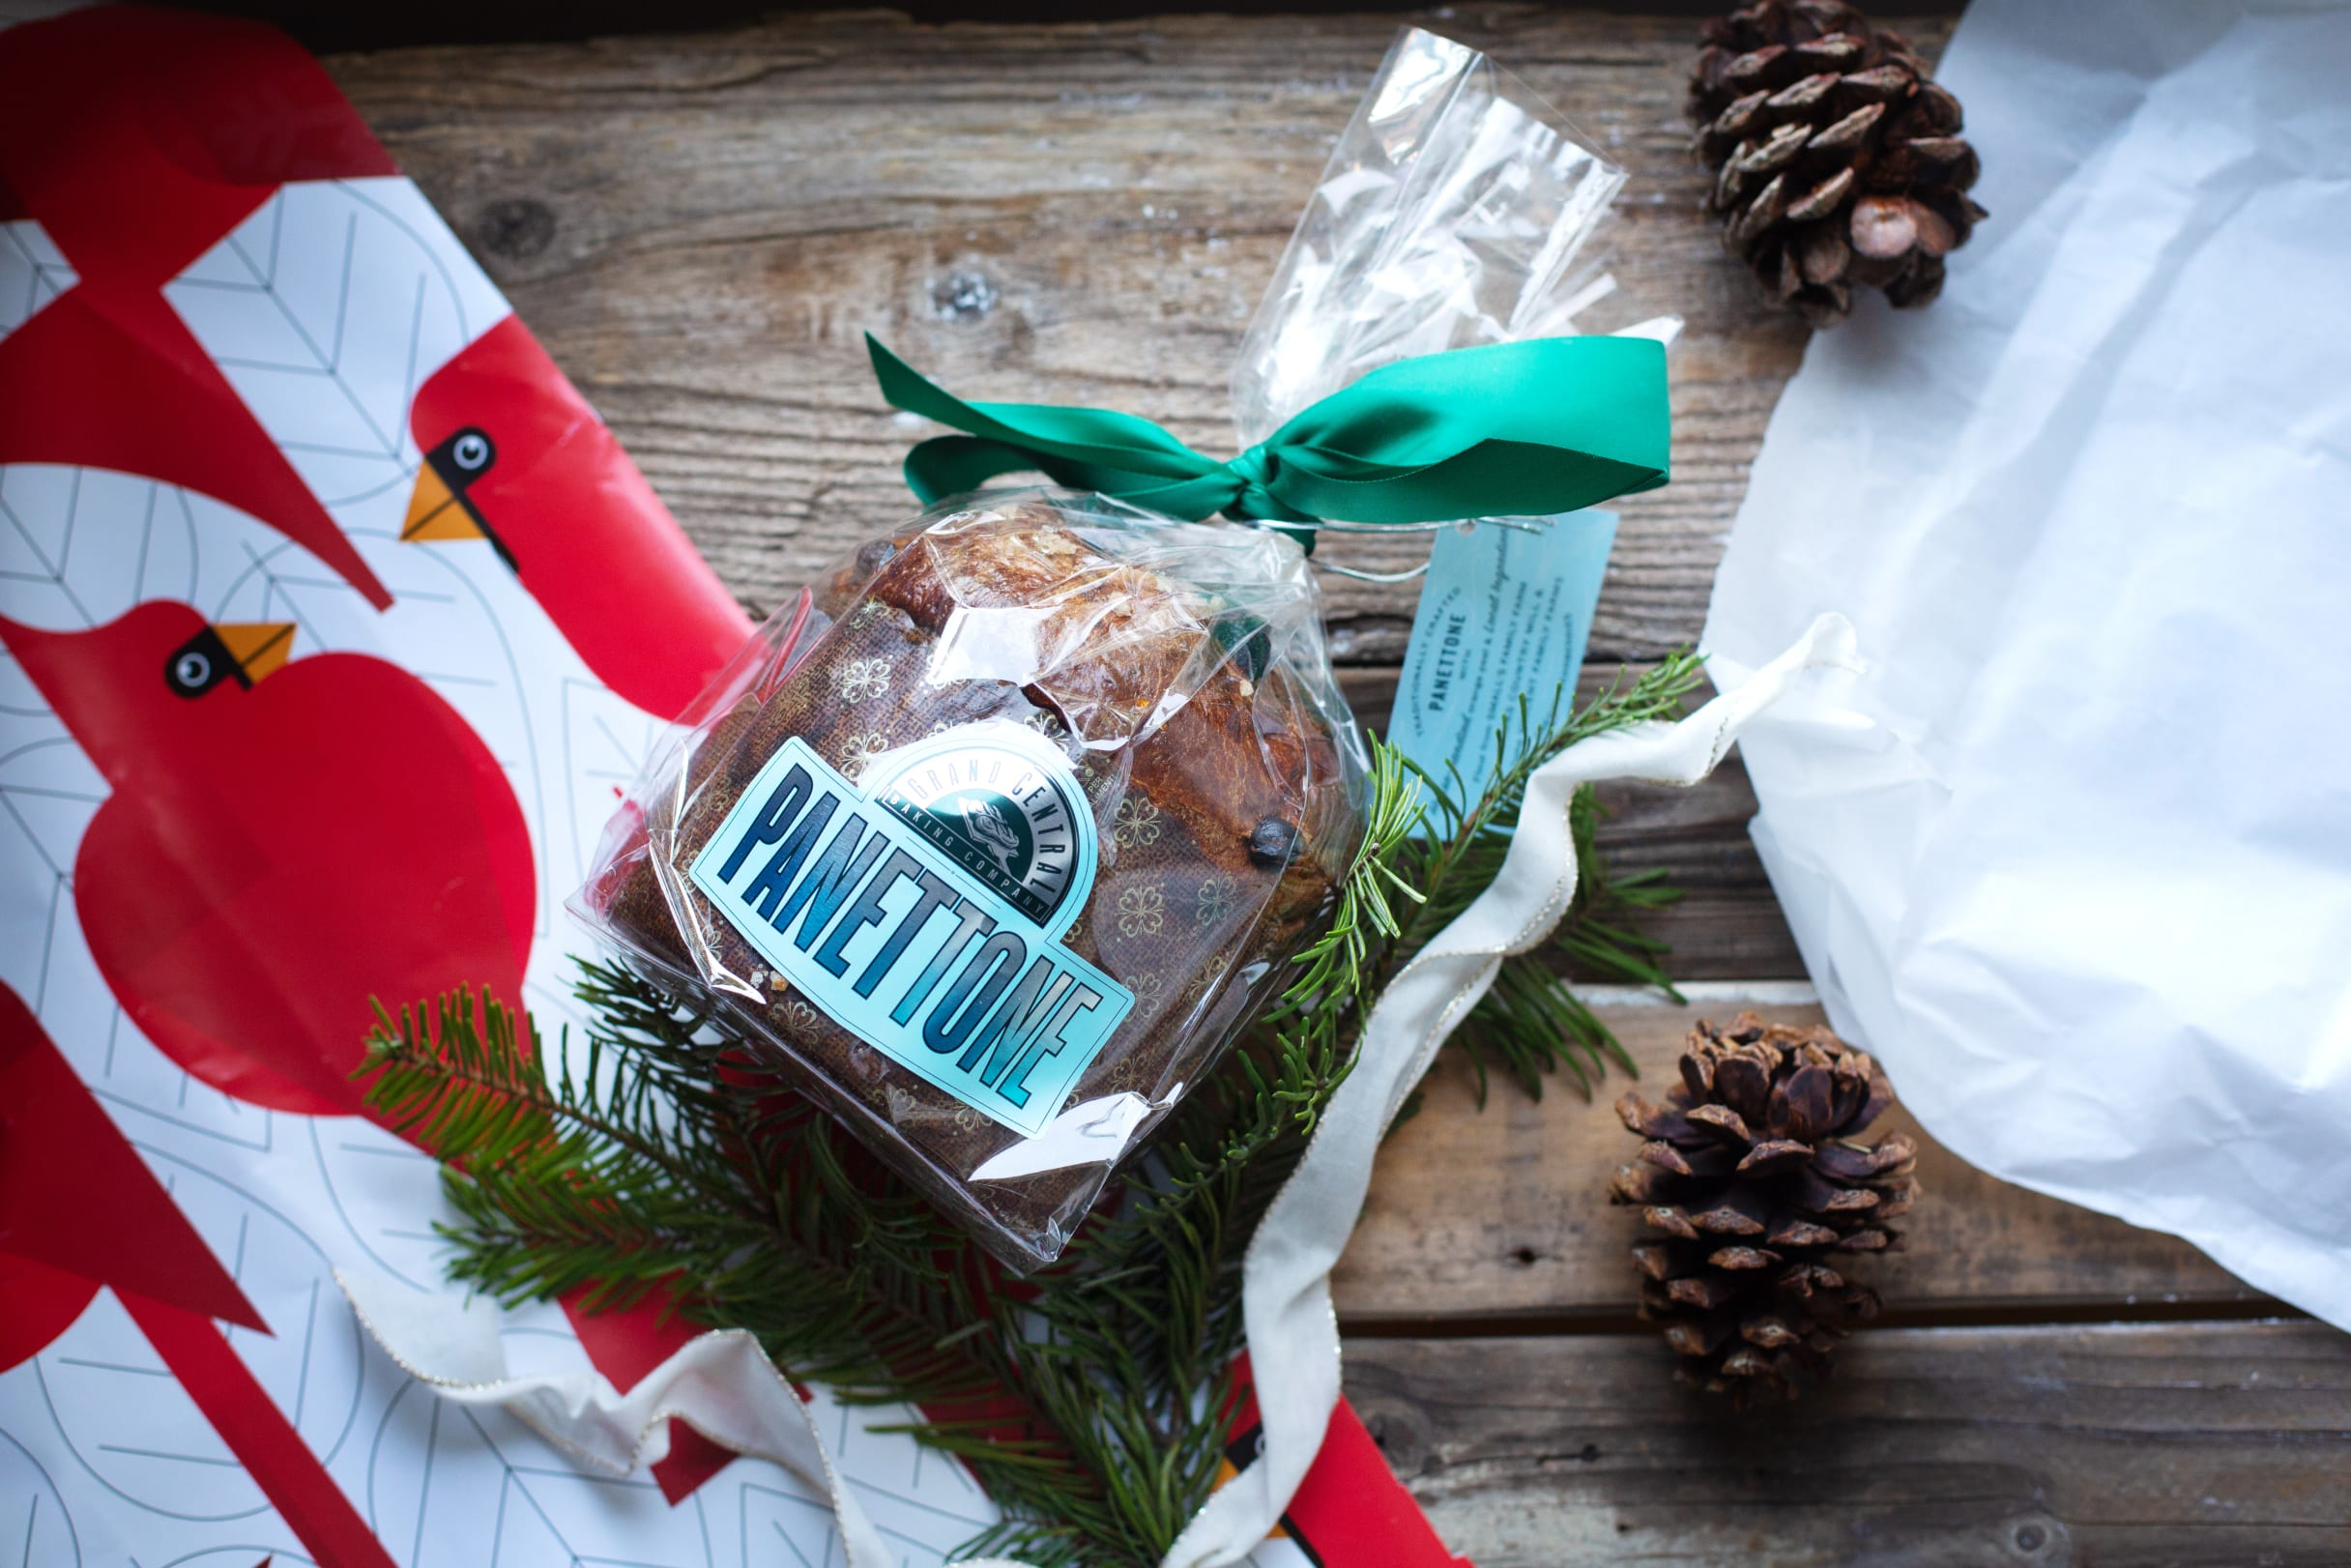 Panettone holiday bread